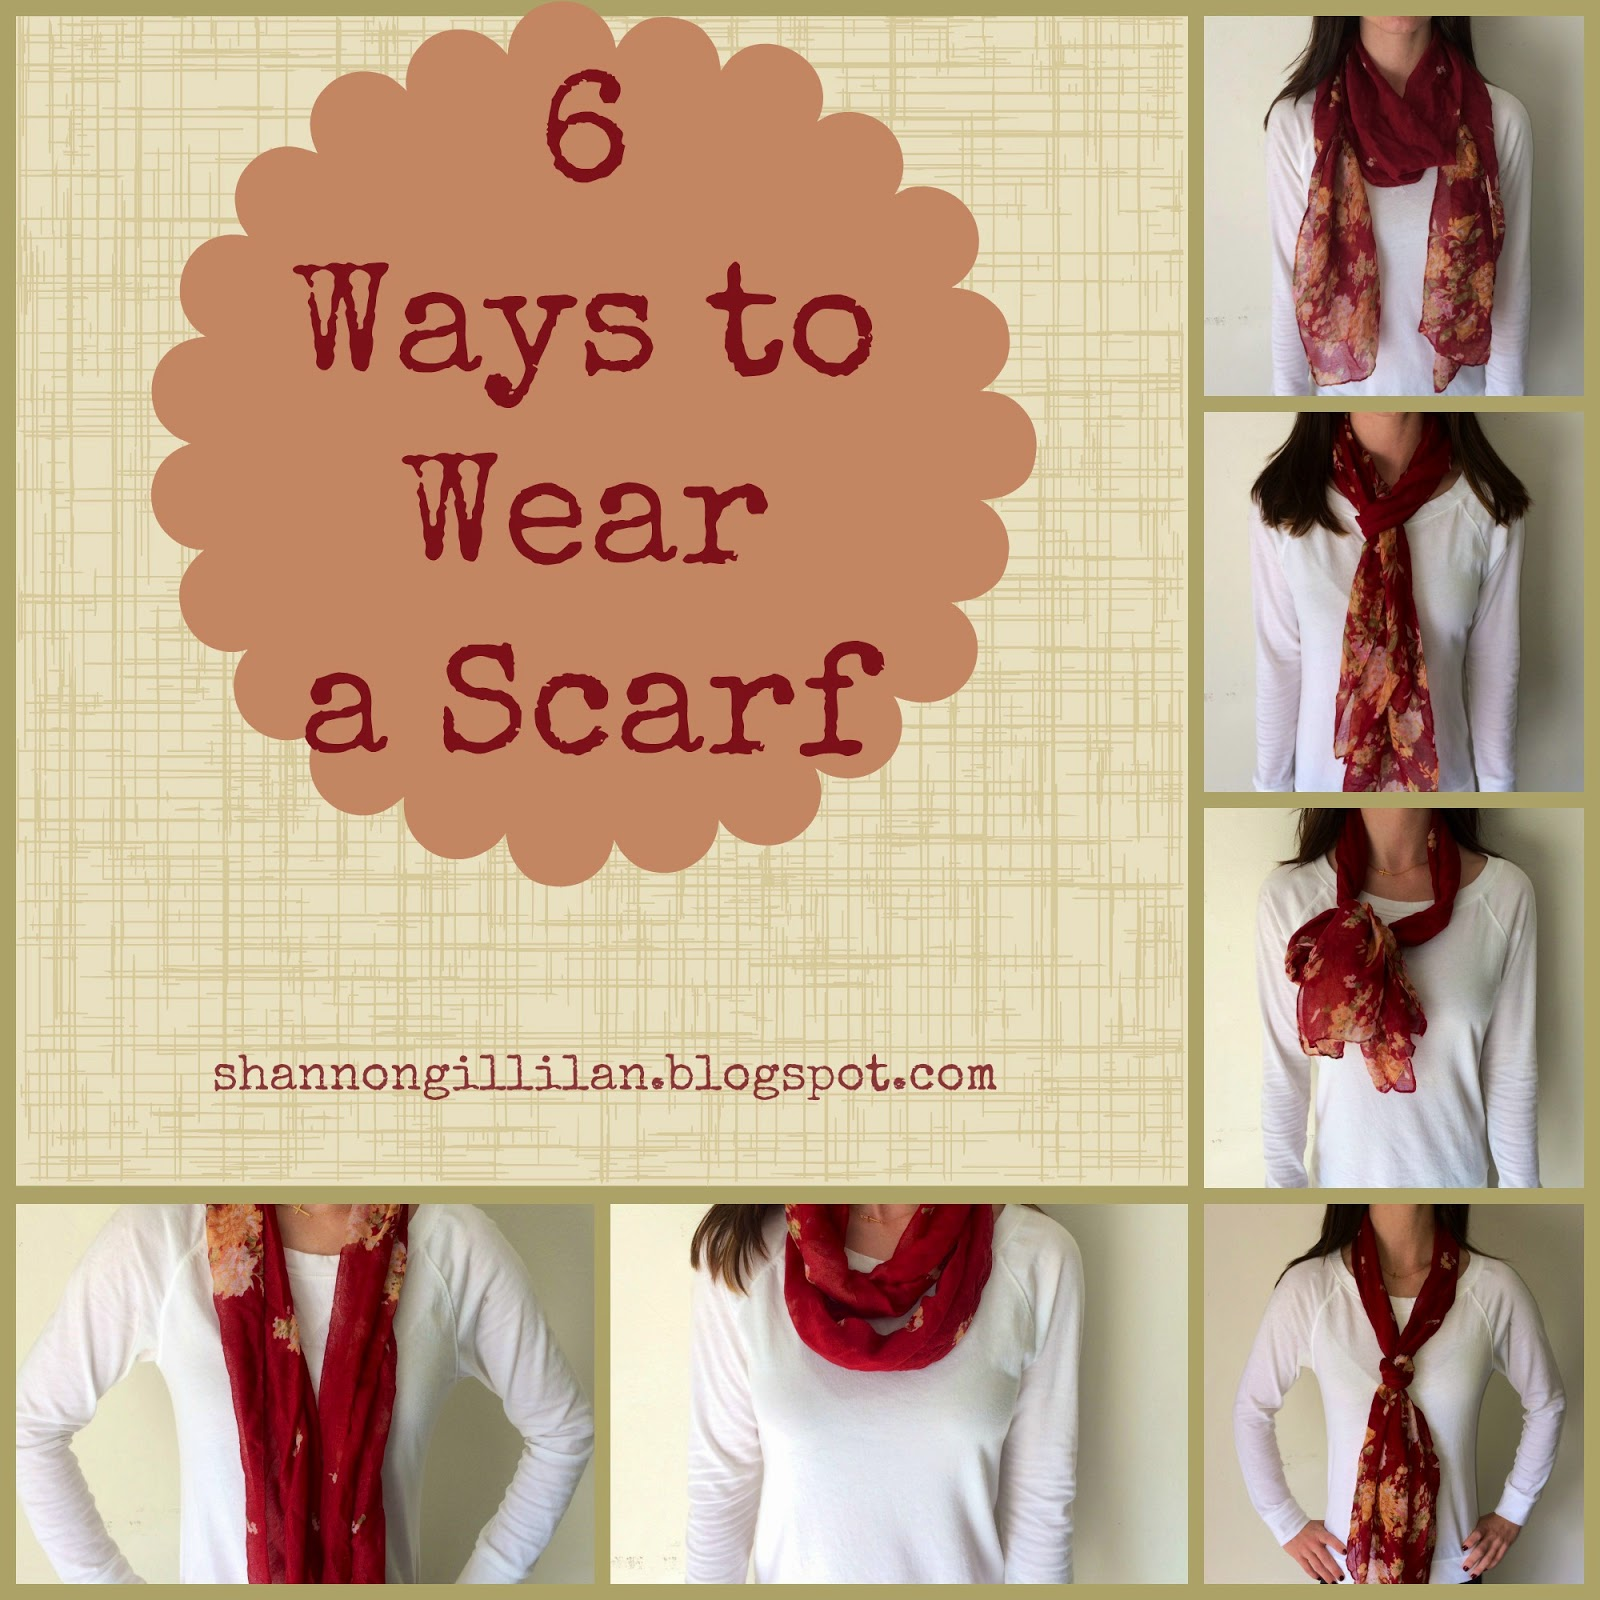 6 ways to wear a scarf fashionable fit fabulous 6